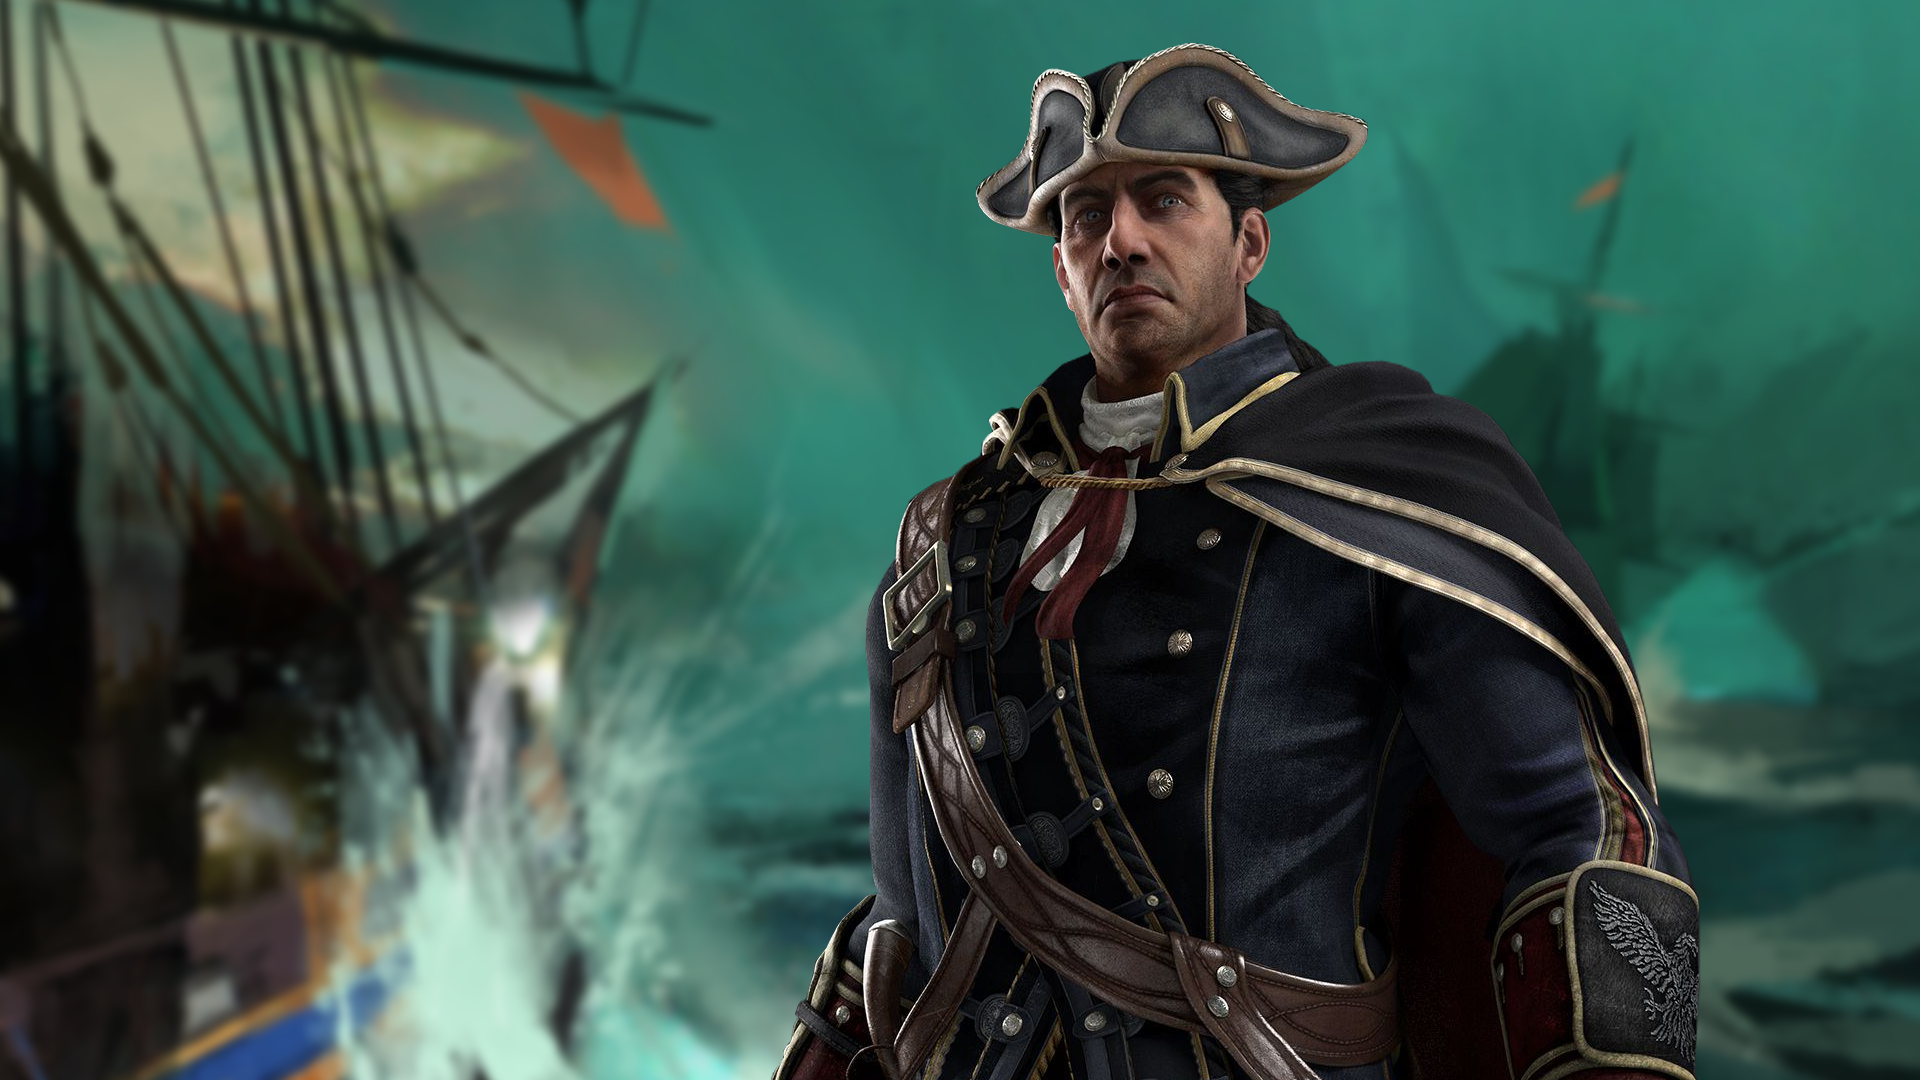 Assassin's Creed 3 has been removed from Steam and Uplay | PC Gamer